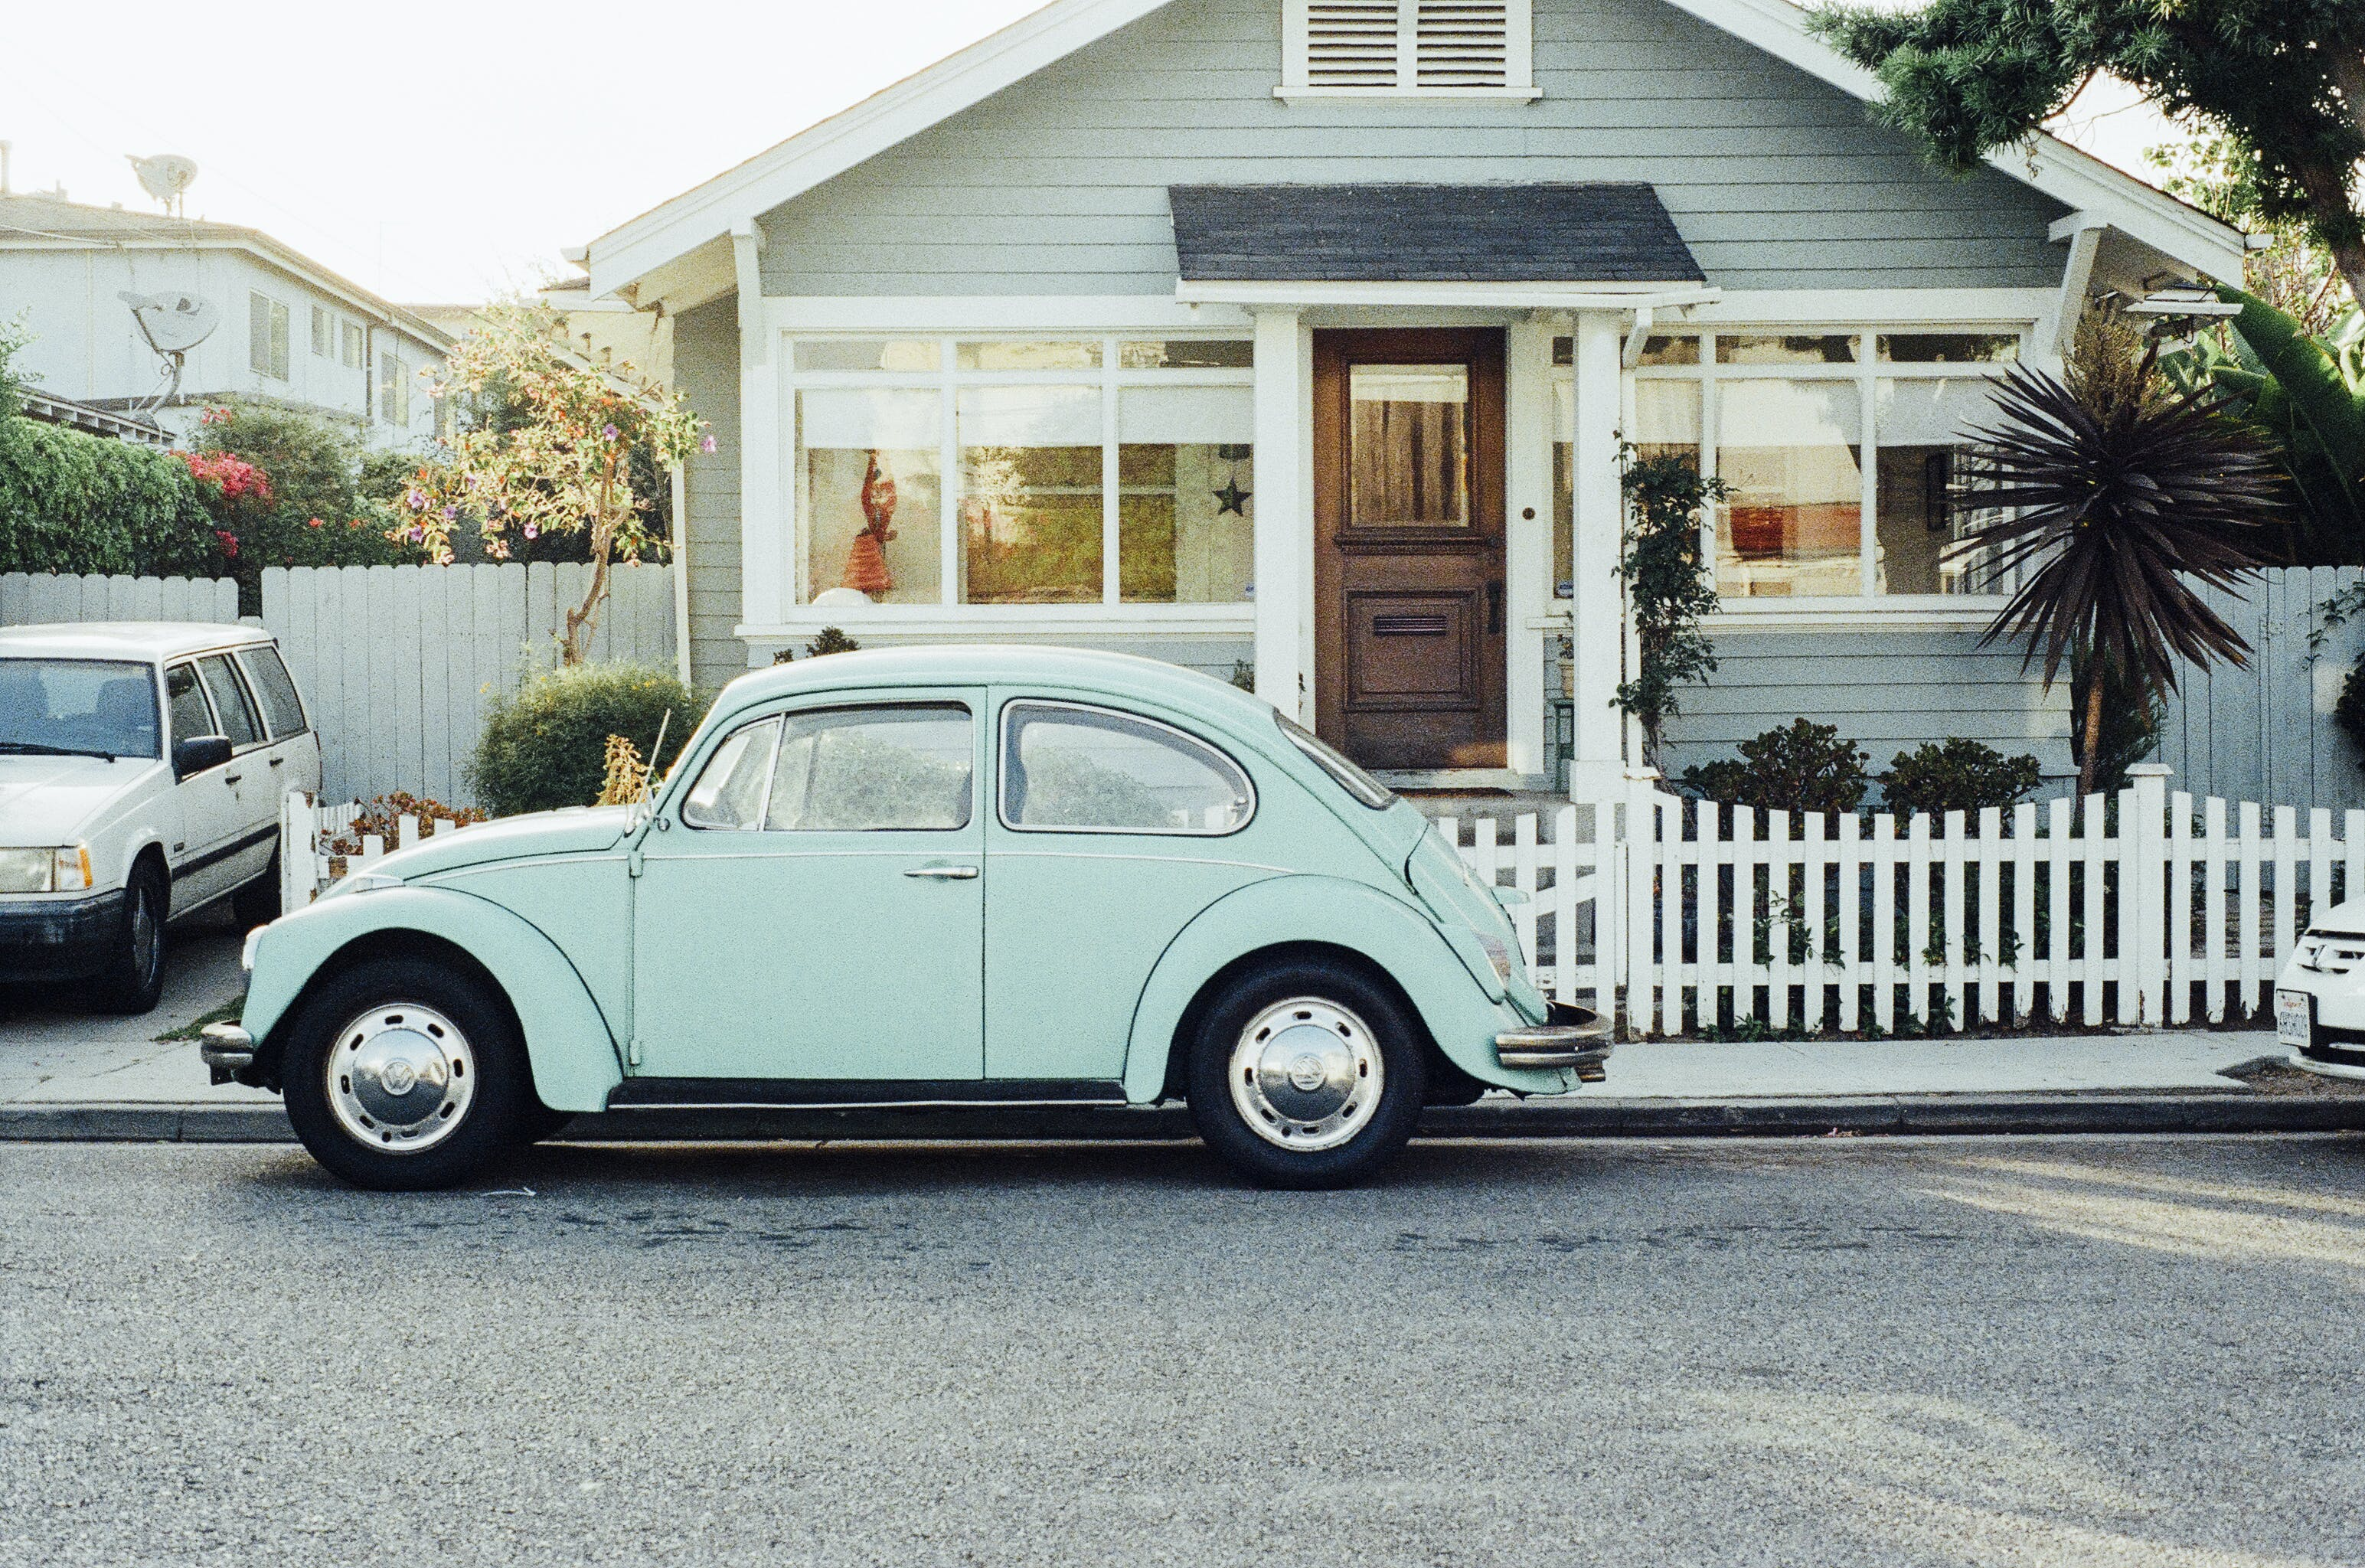 This is a photo of a light mint green old VW beetle car in front of a wodden house with a white fence in a residential area in a typical american street. There is a yucca palm tree in the lawn of the house. The sun is shining brightly.